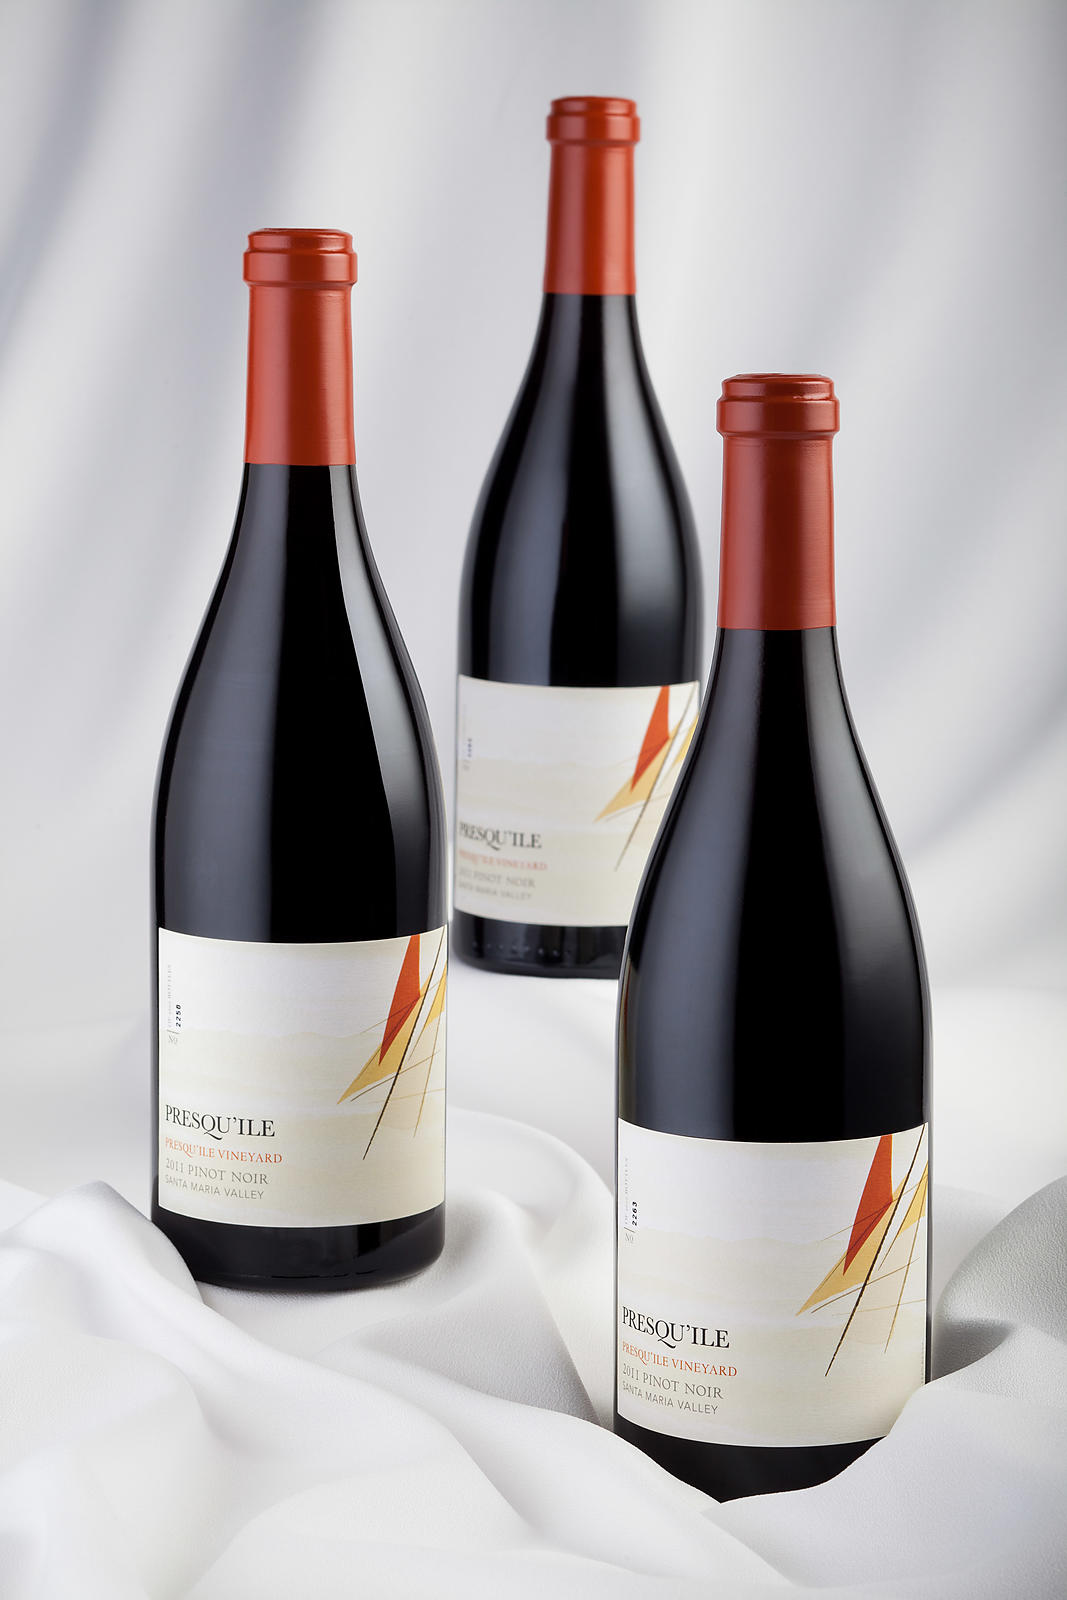 Wine bottle packaging photography for marketing and design firms.